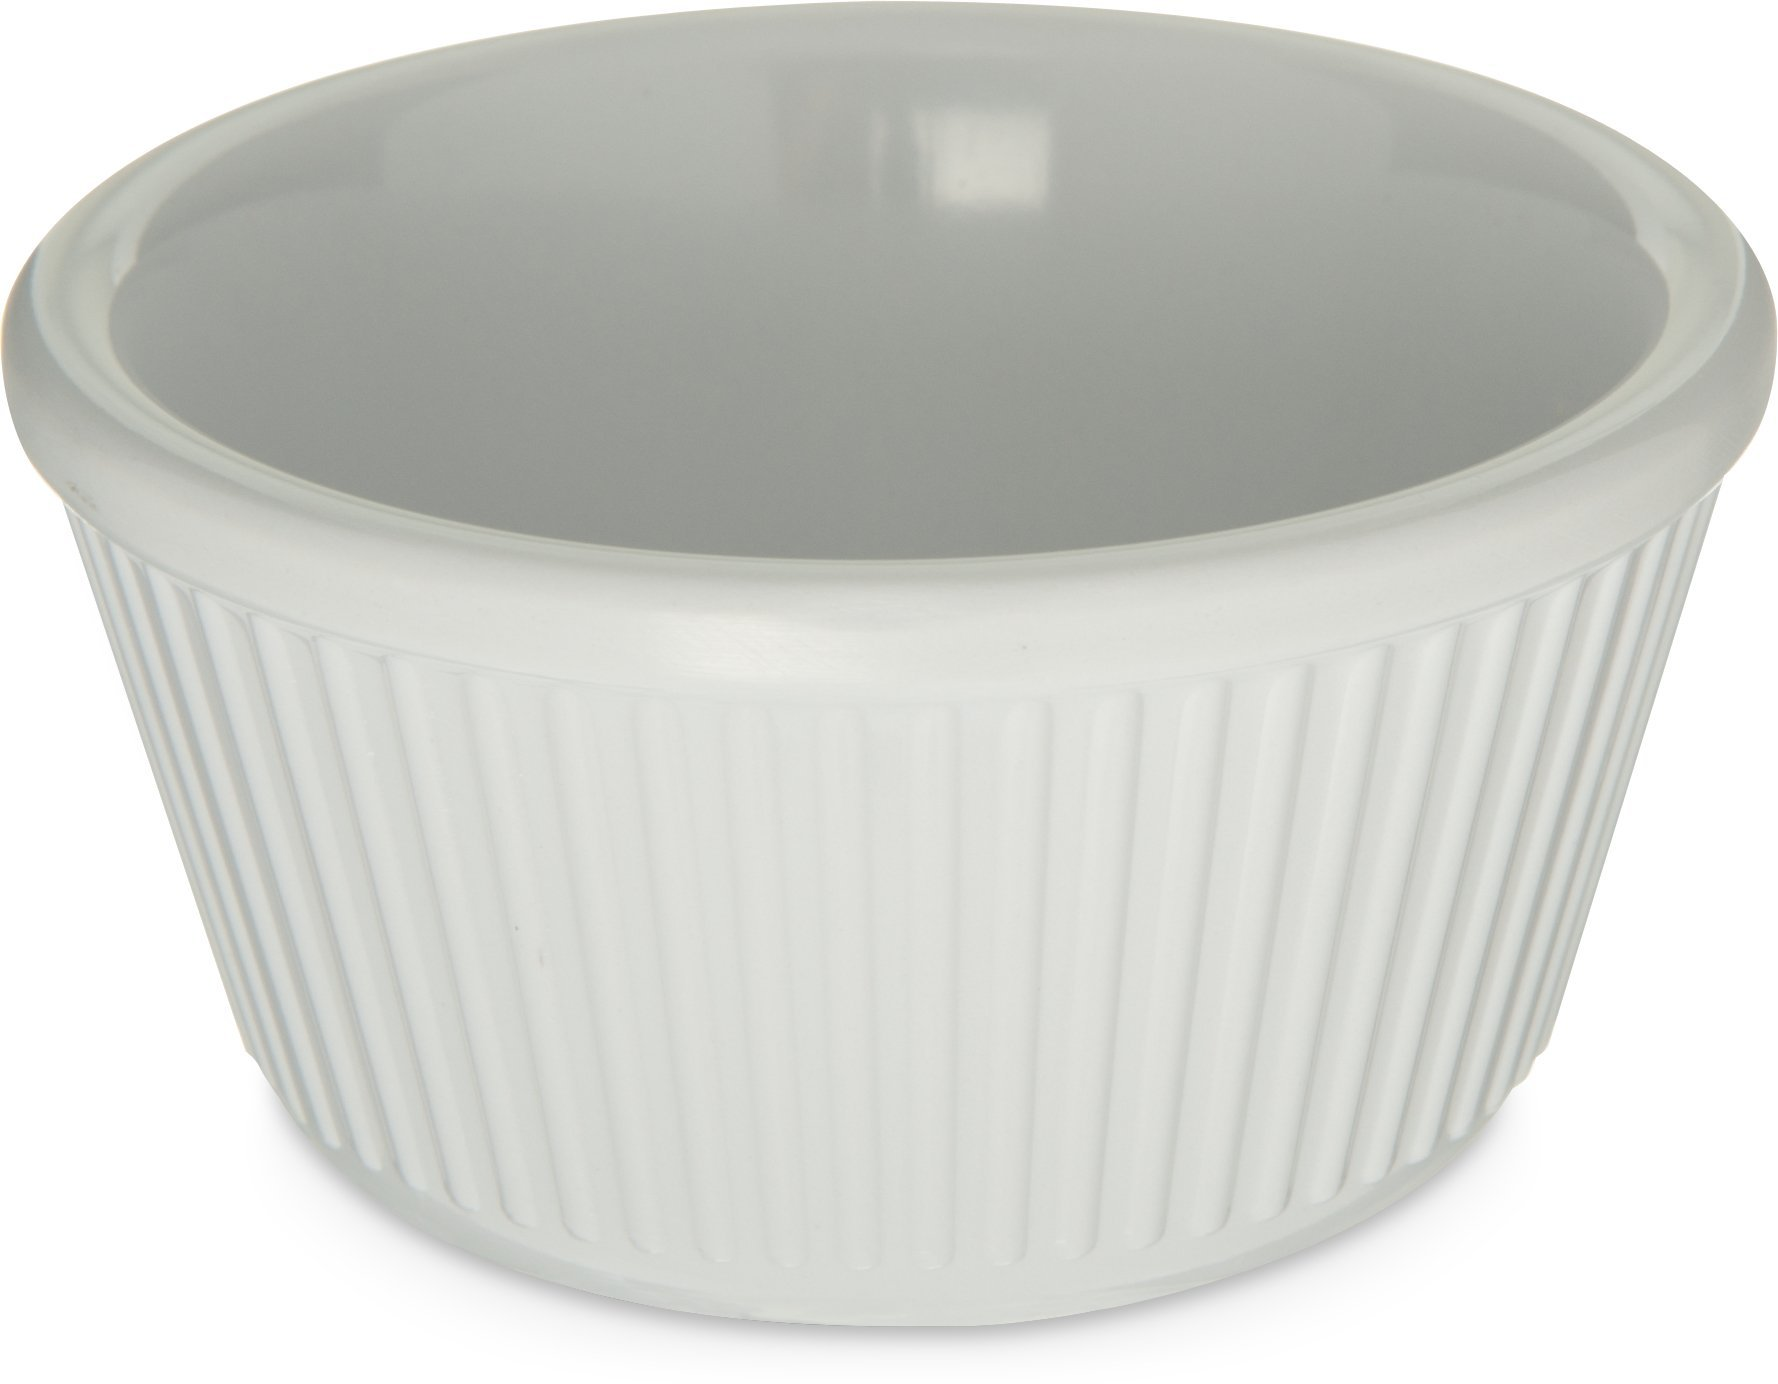 Carlisle S28702 Melamine Fluted Ramekin, 4 oz. Capacity, White (Case of 48) by Carlisle